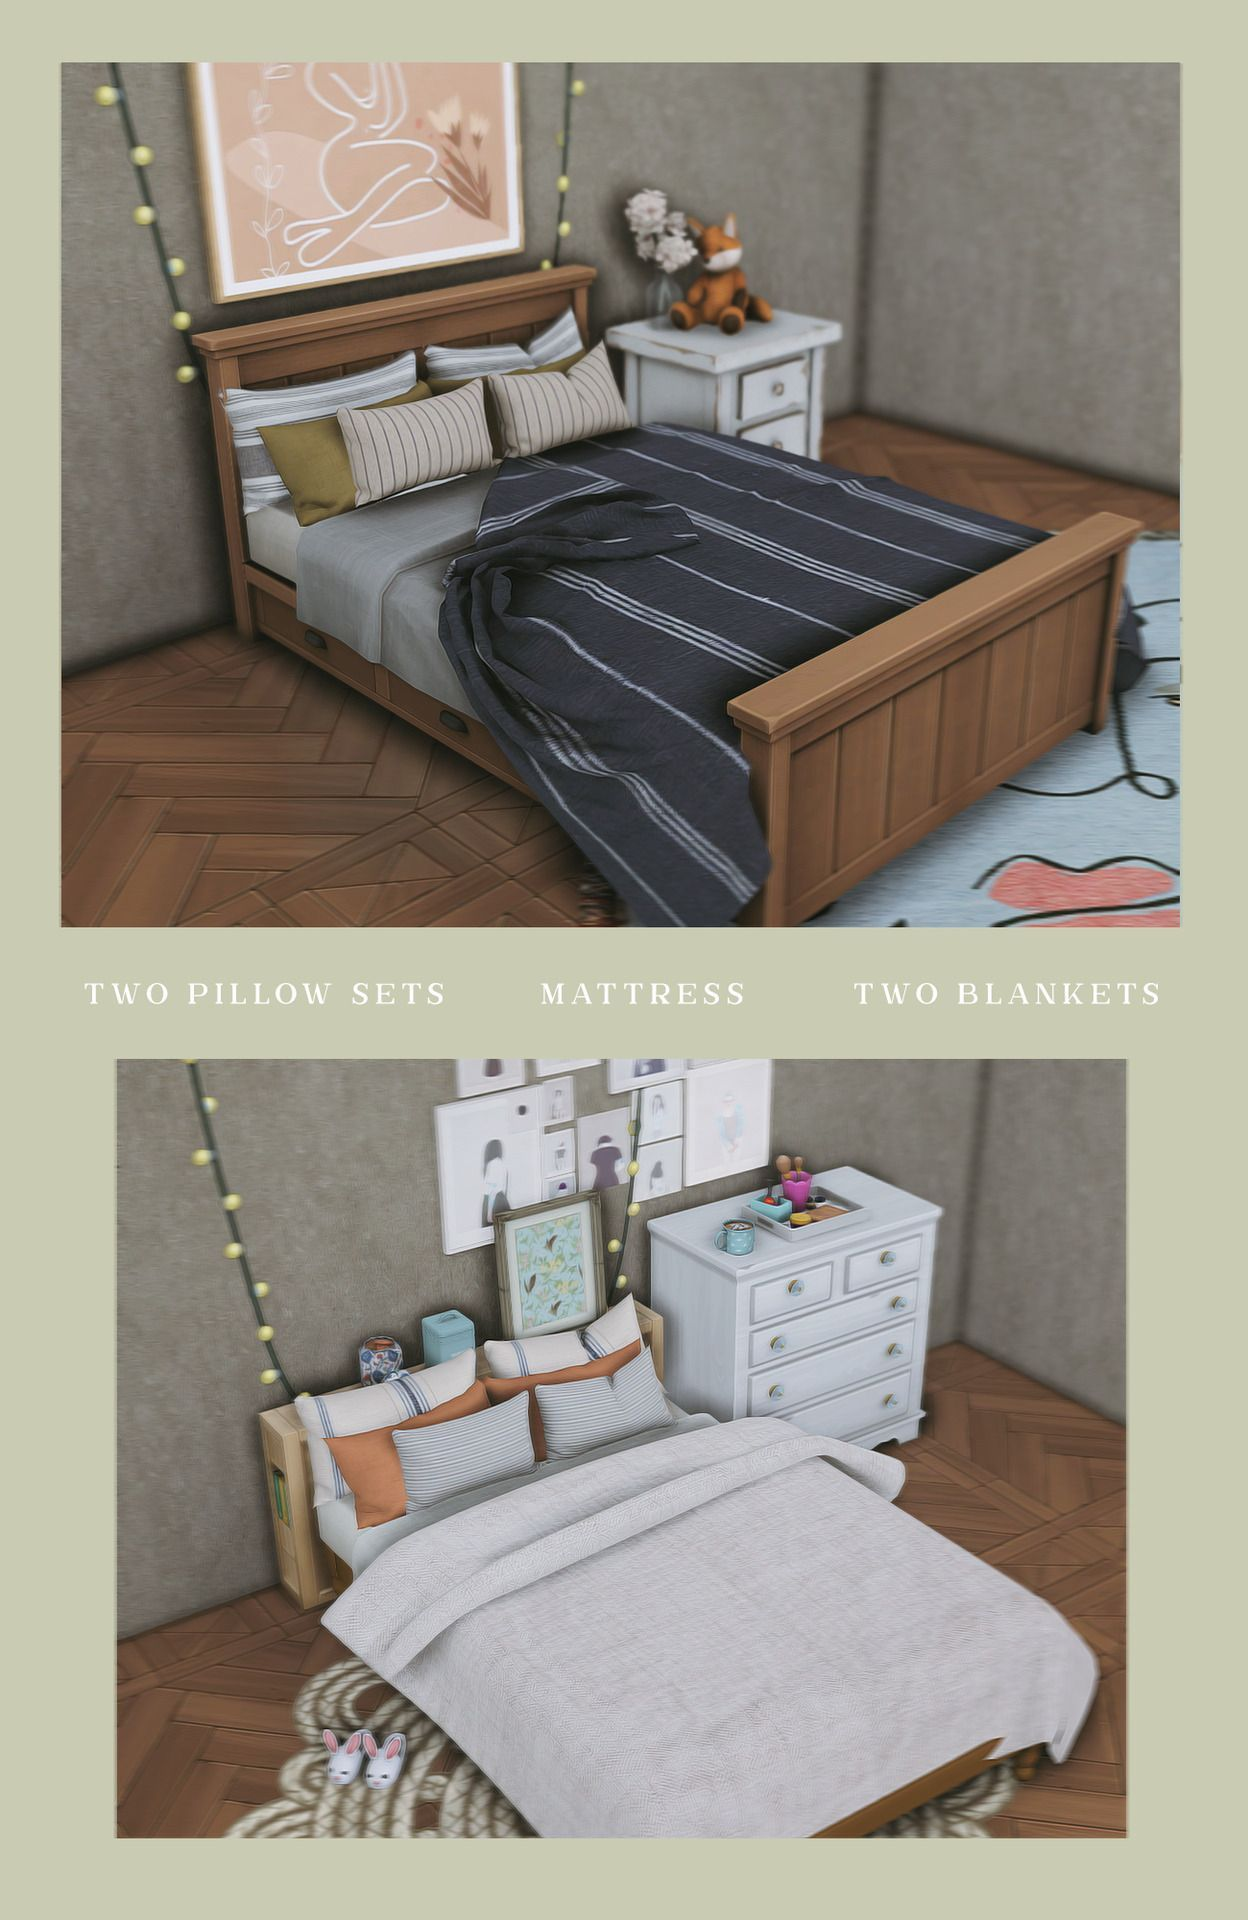 Building A Gaming Pc 455708056049175580 Custom Content By Honeycuts Source By R2dm00n In 2020 Sims 4 Bedroom Sims 4 Beds Sims 4 Cc Furniture